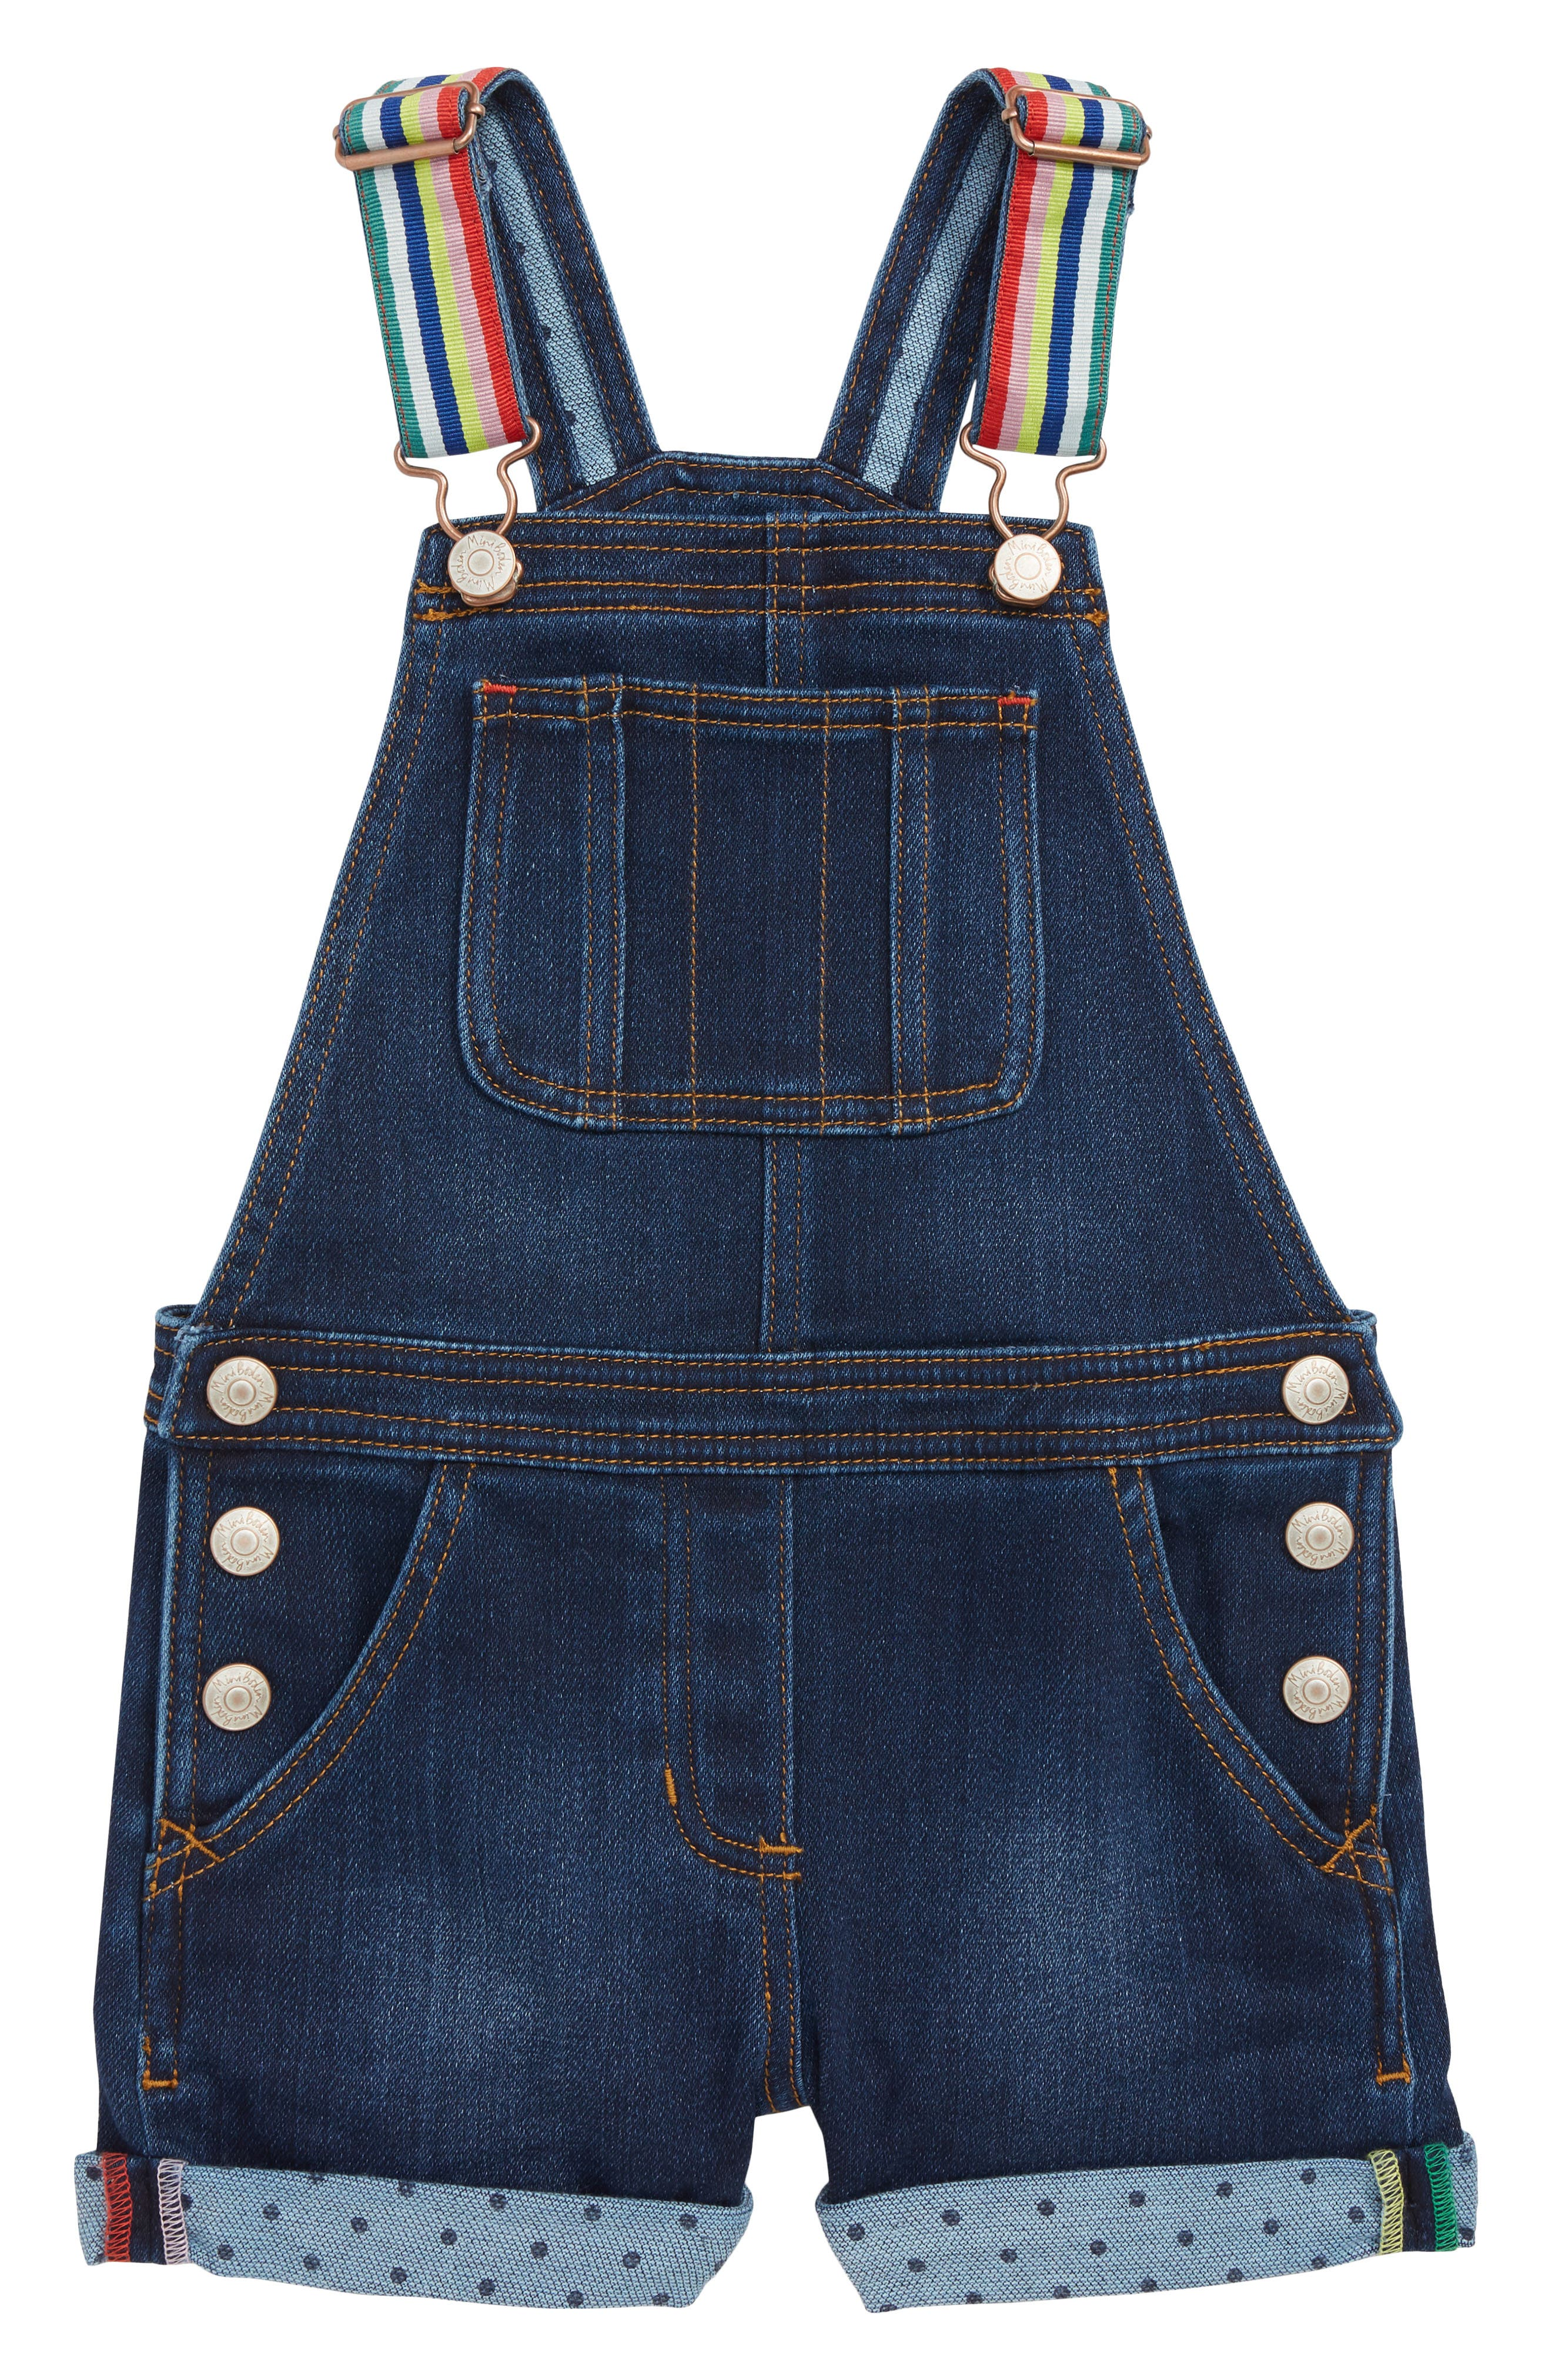 Dungarees Short Overalls,                         Main,                         color, 469